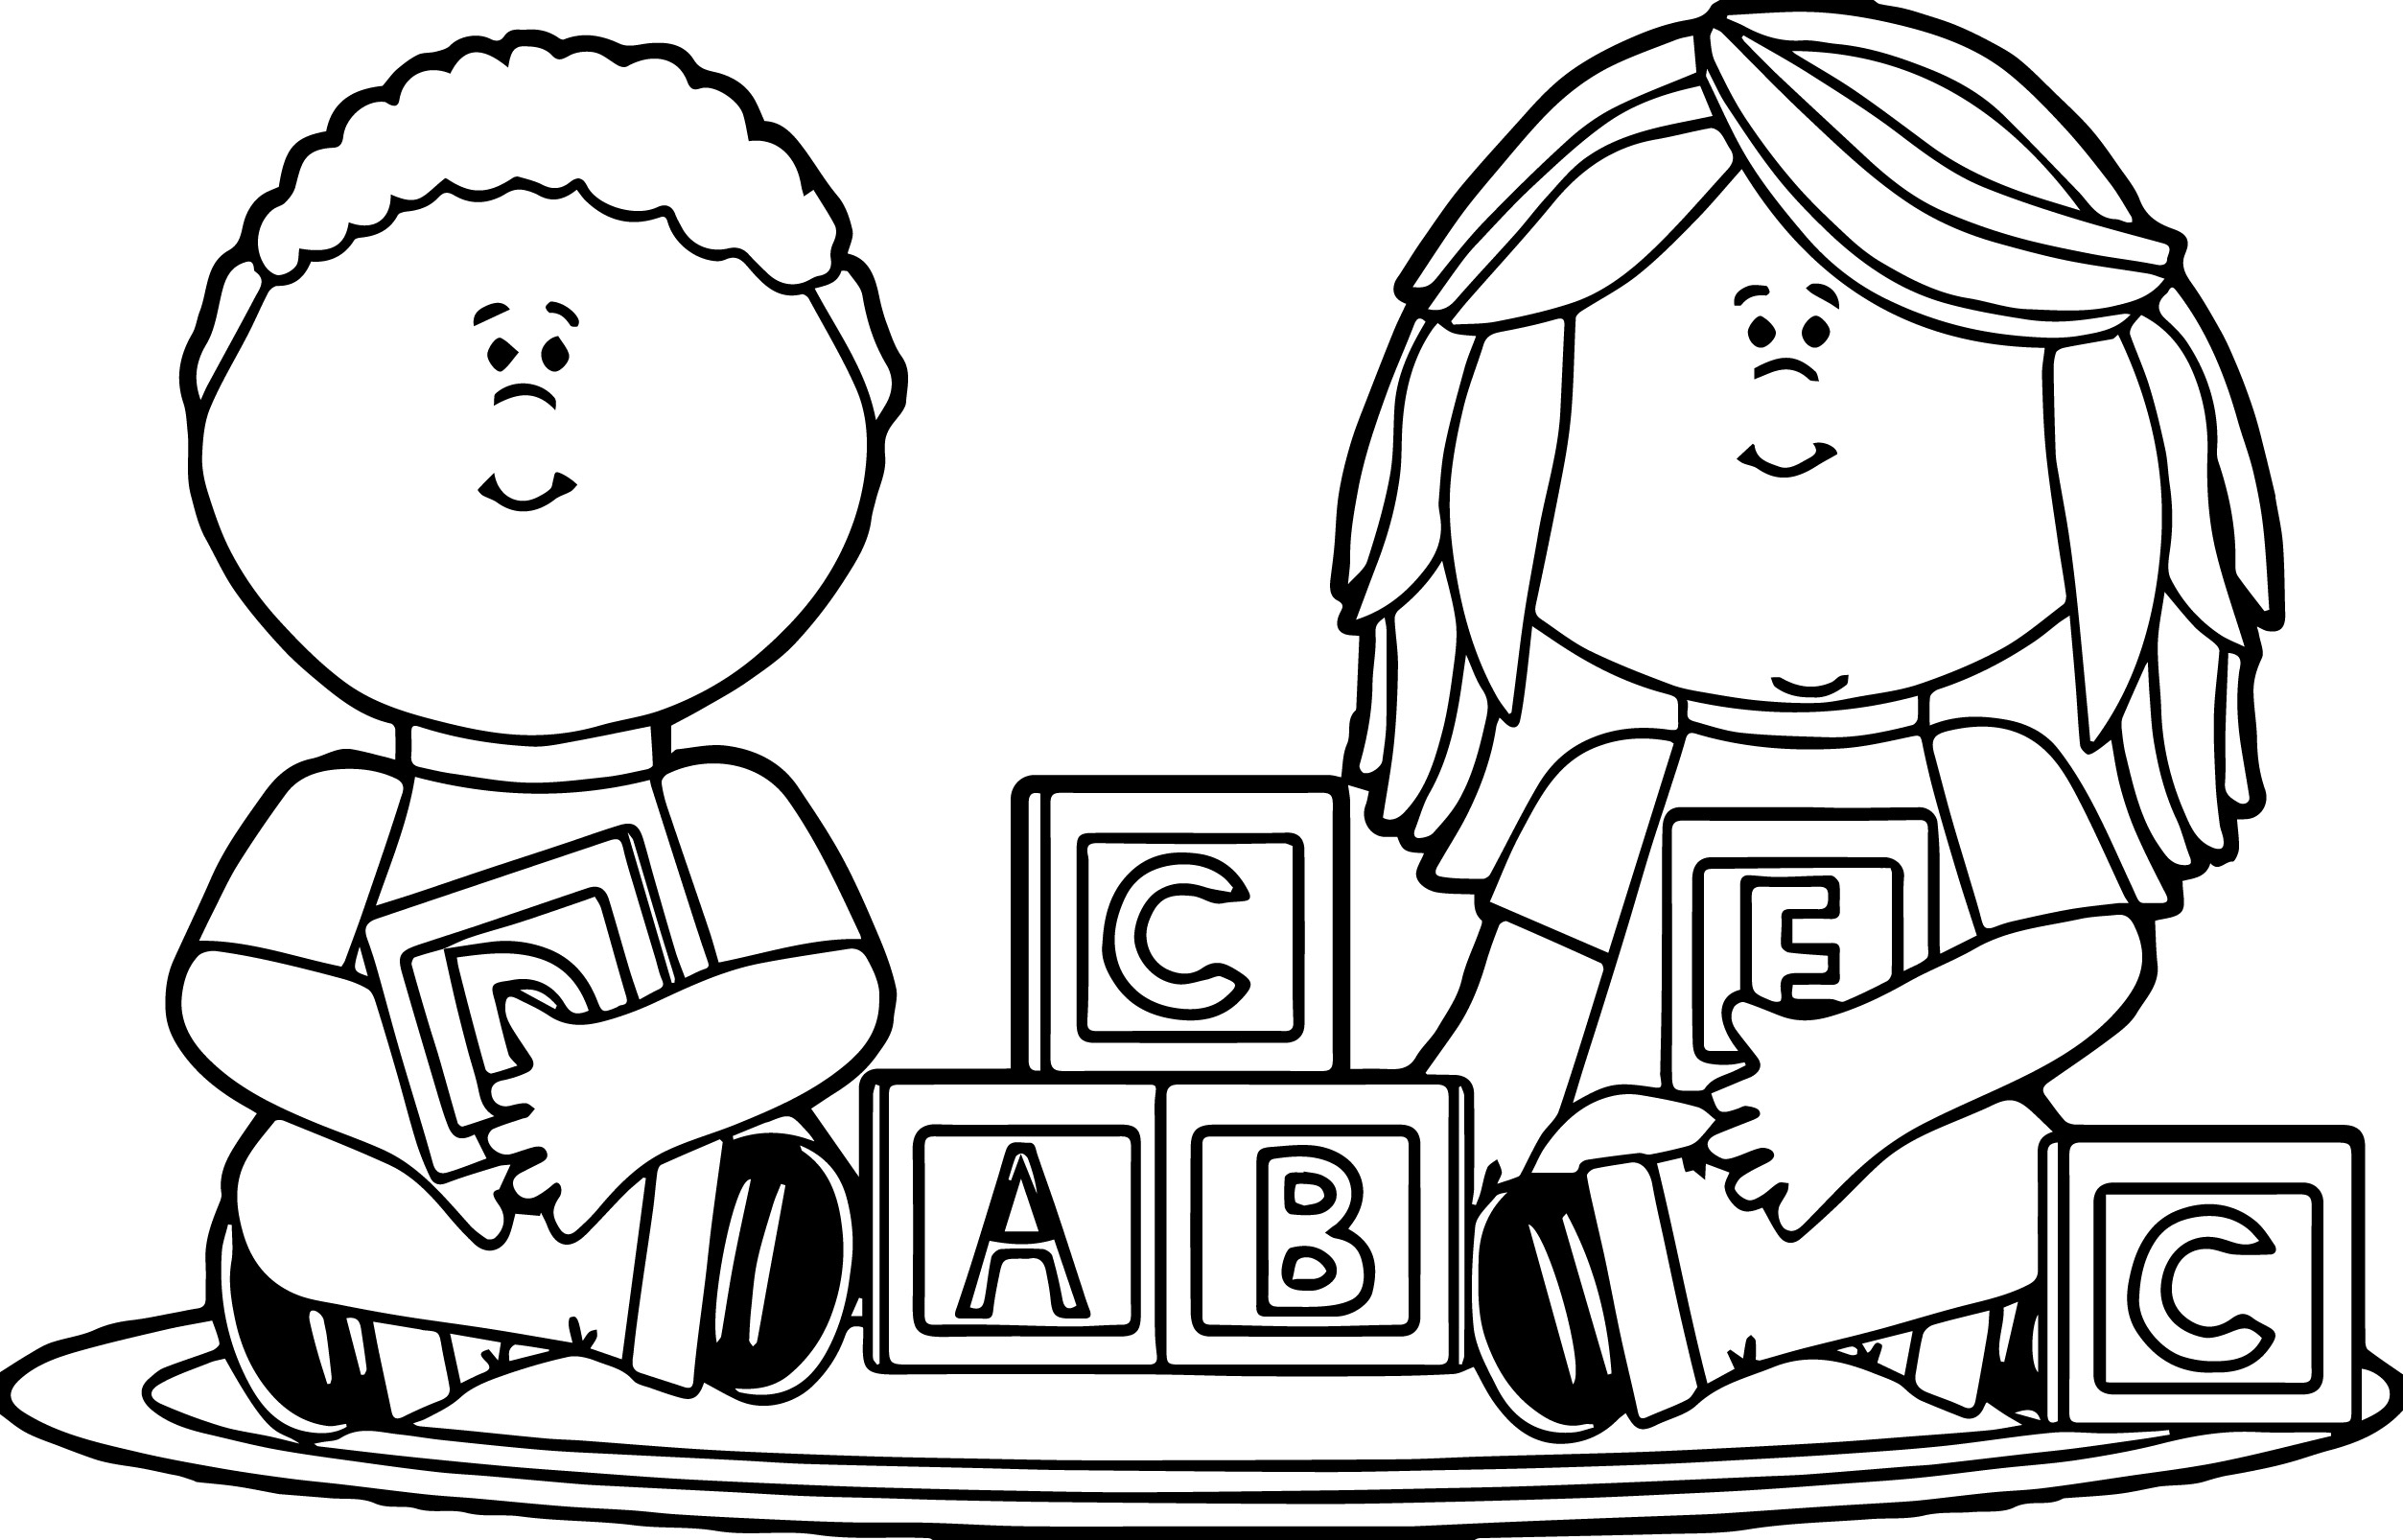 Coloring Pages Kids Playing Coloring Pages kids playing coloring pages eassume com u2013 osgbrize